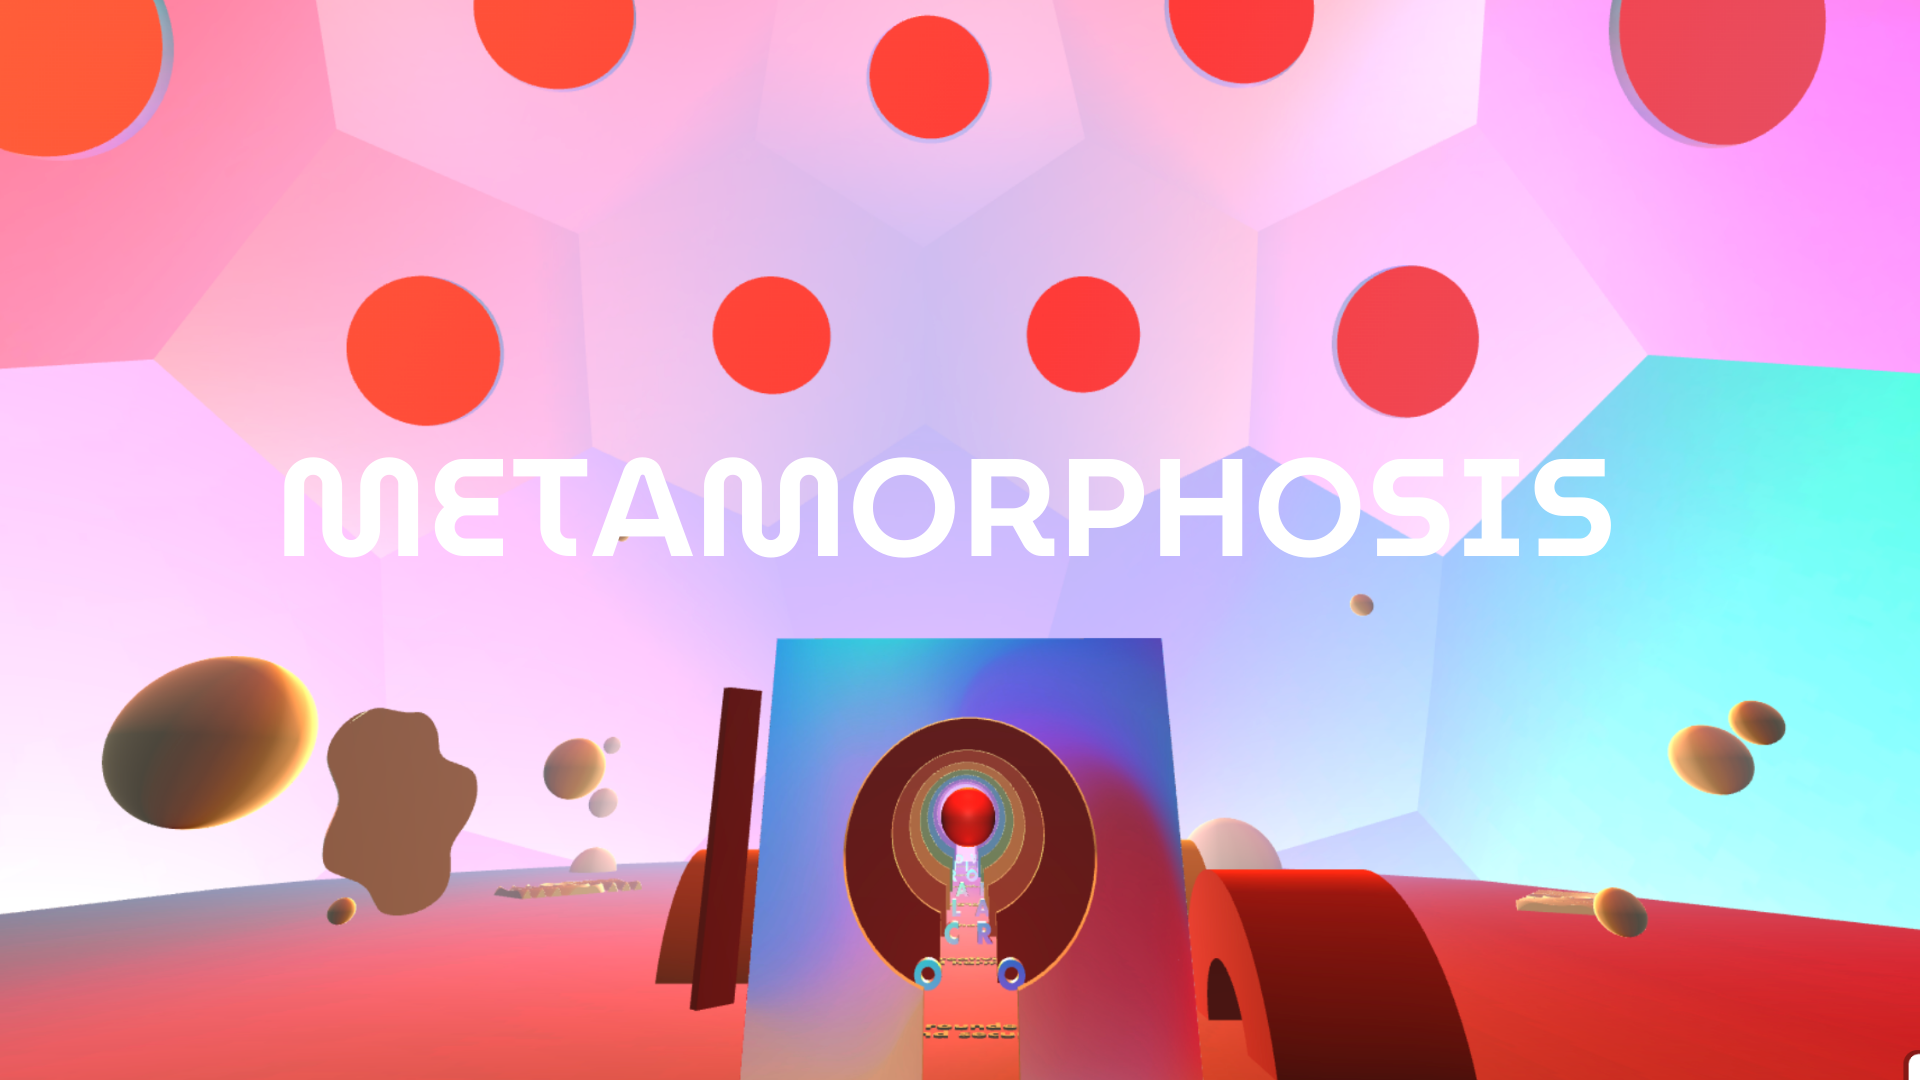 Computer graphic of the title on a colorful 3D background, with red dots and geometric chapes.